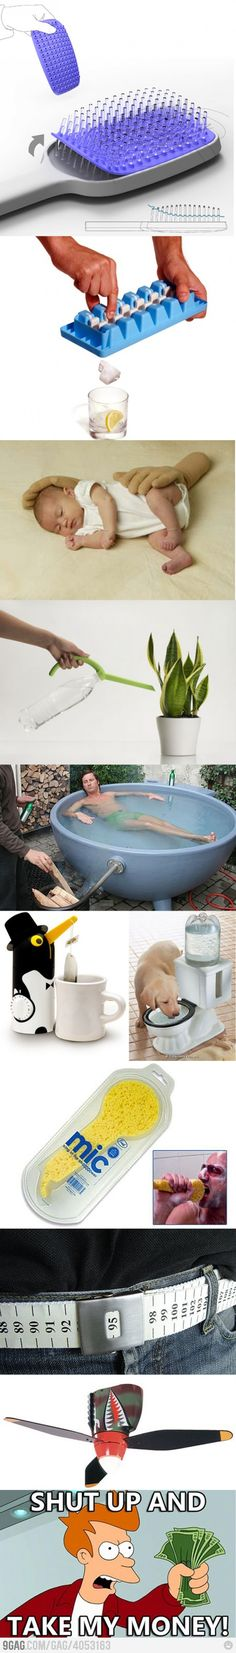 9gag cool invention